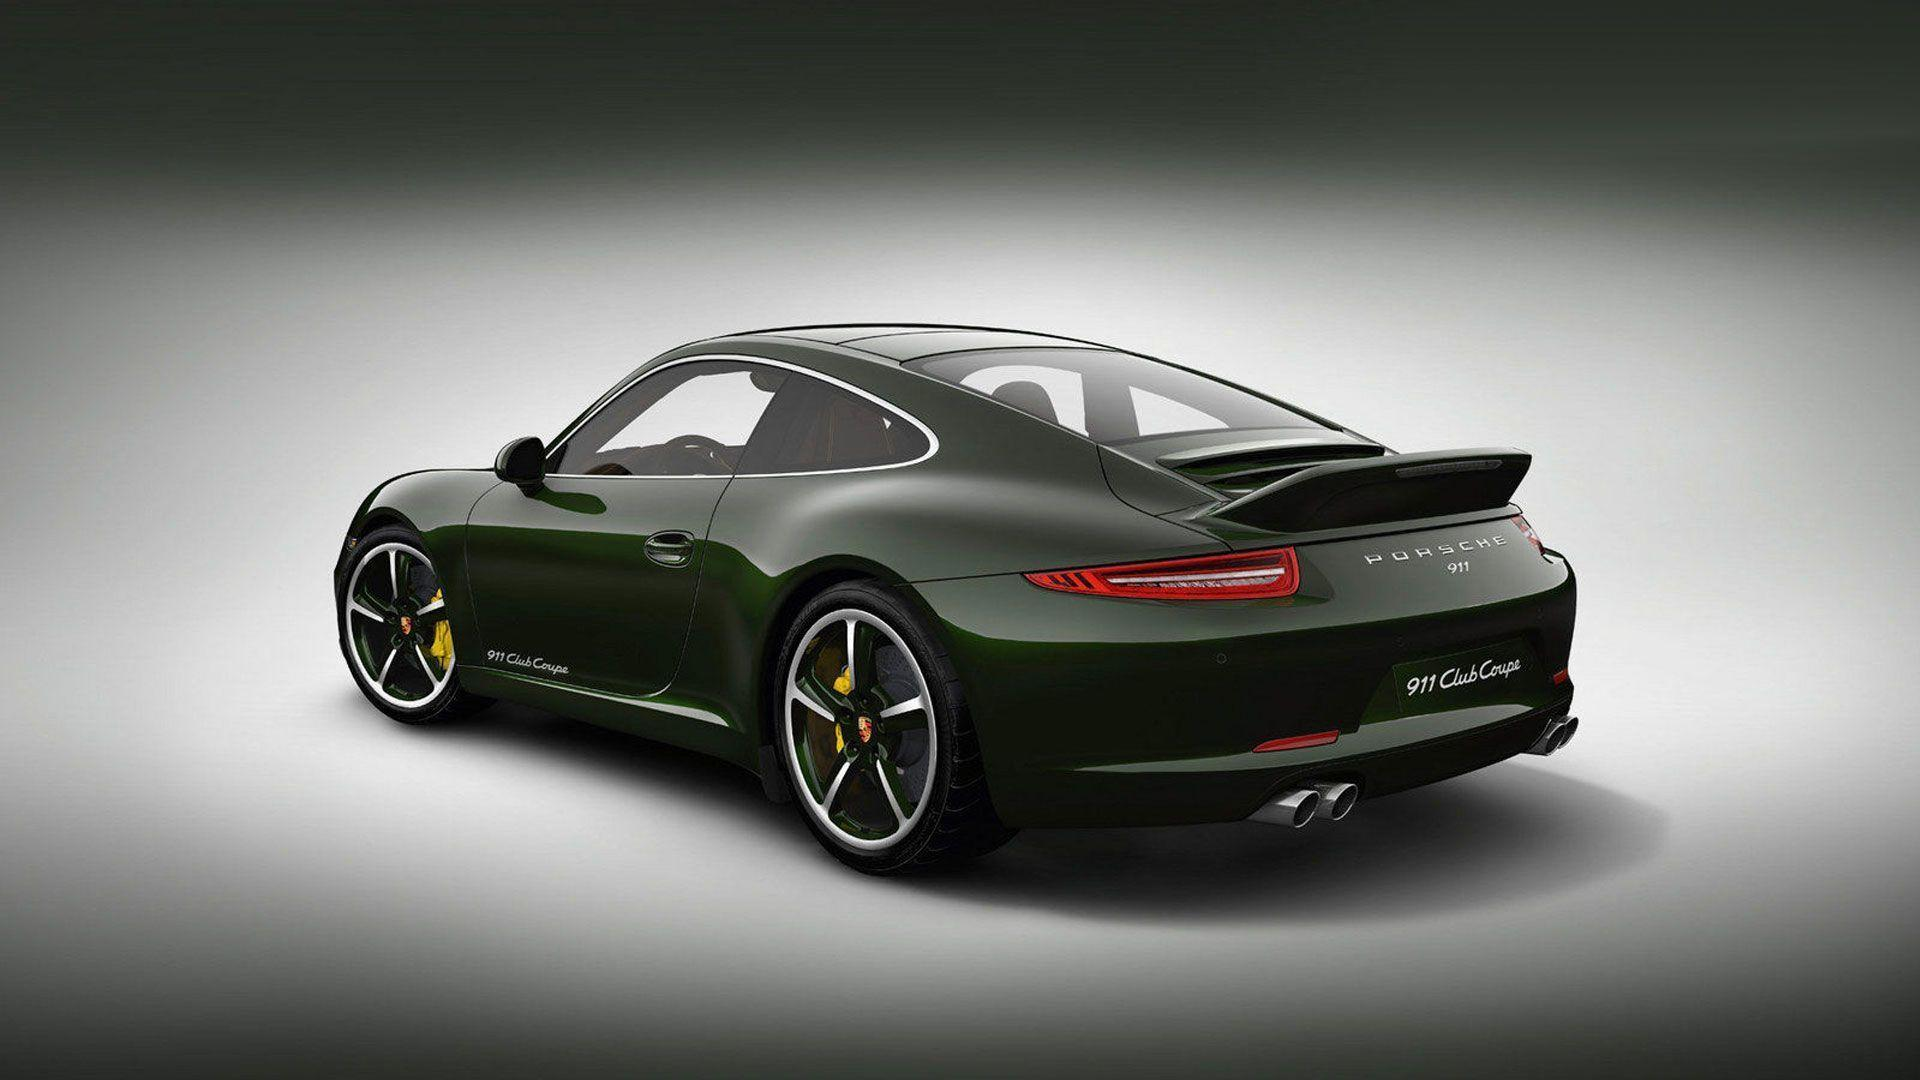 Porsche 911 car wallpapers | Car 786